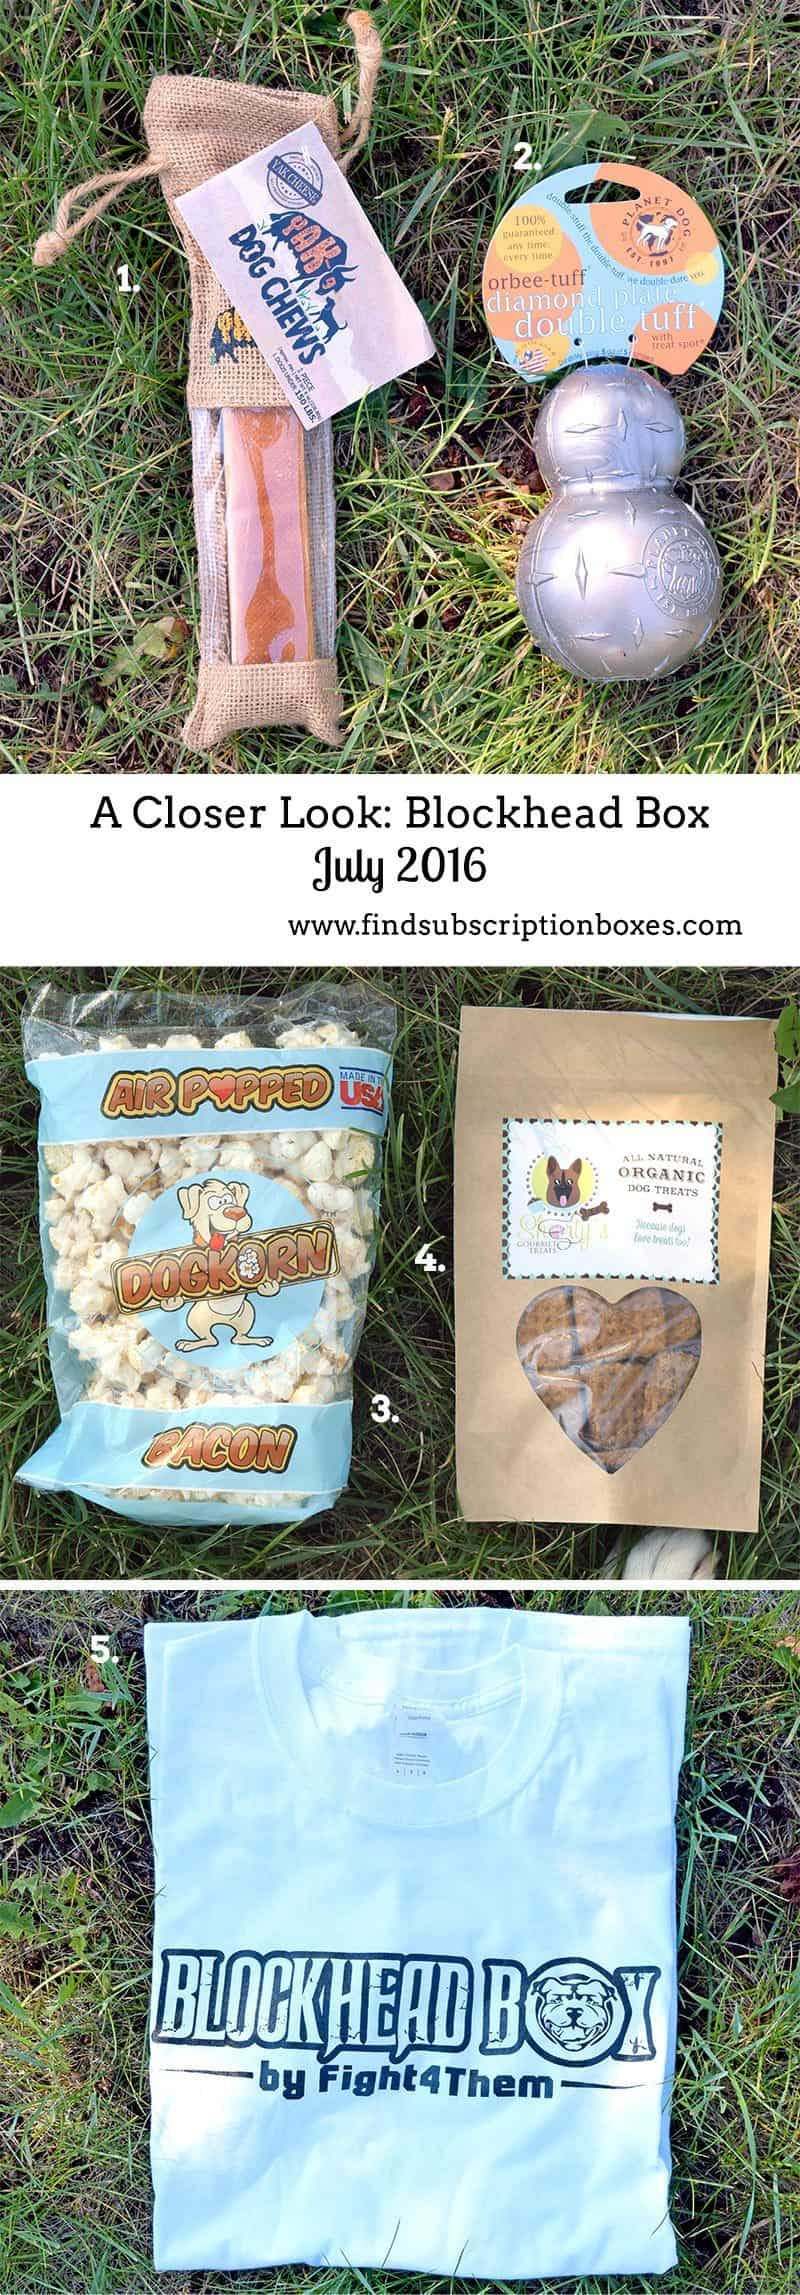 July 2016 Blockhead Box Review - Inside the Box